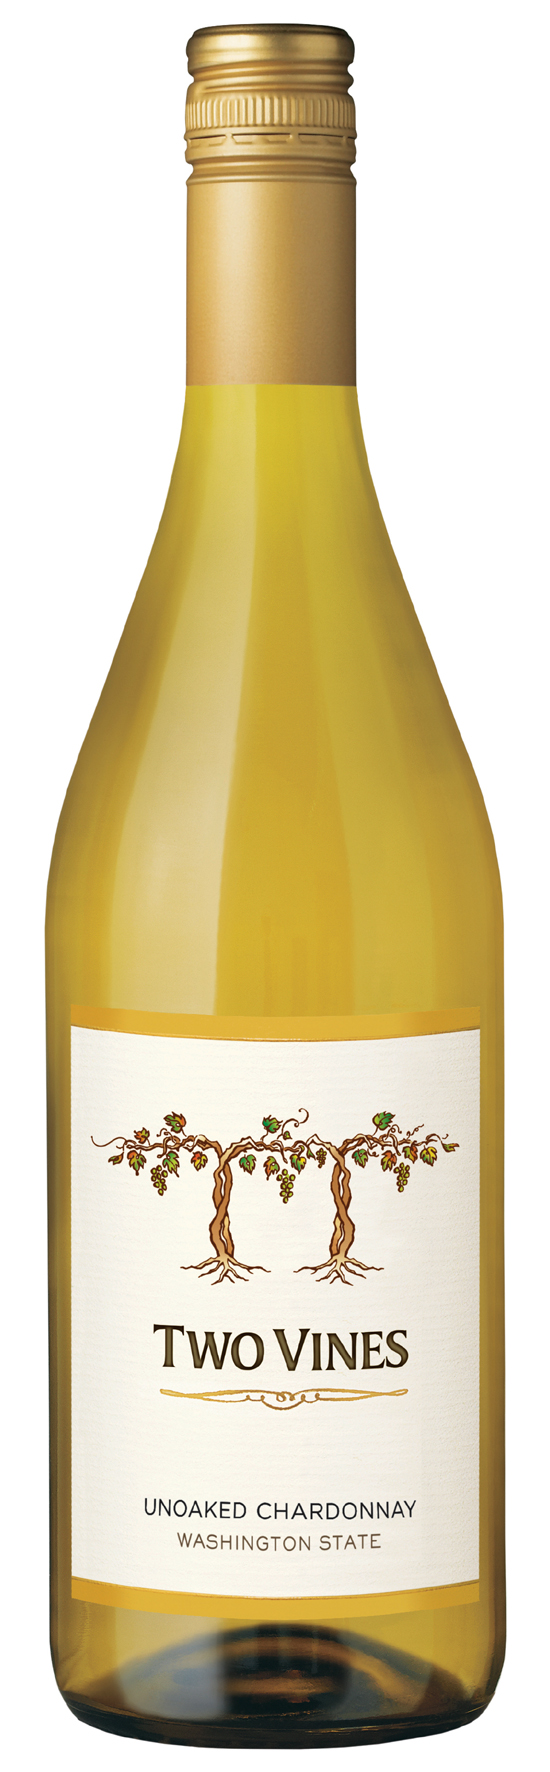 Two Vines Chardonnay unoaked